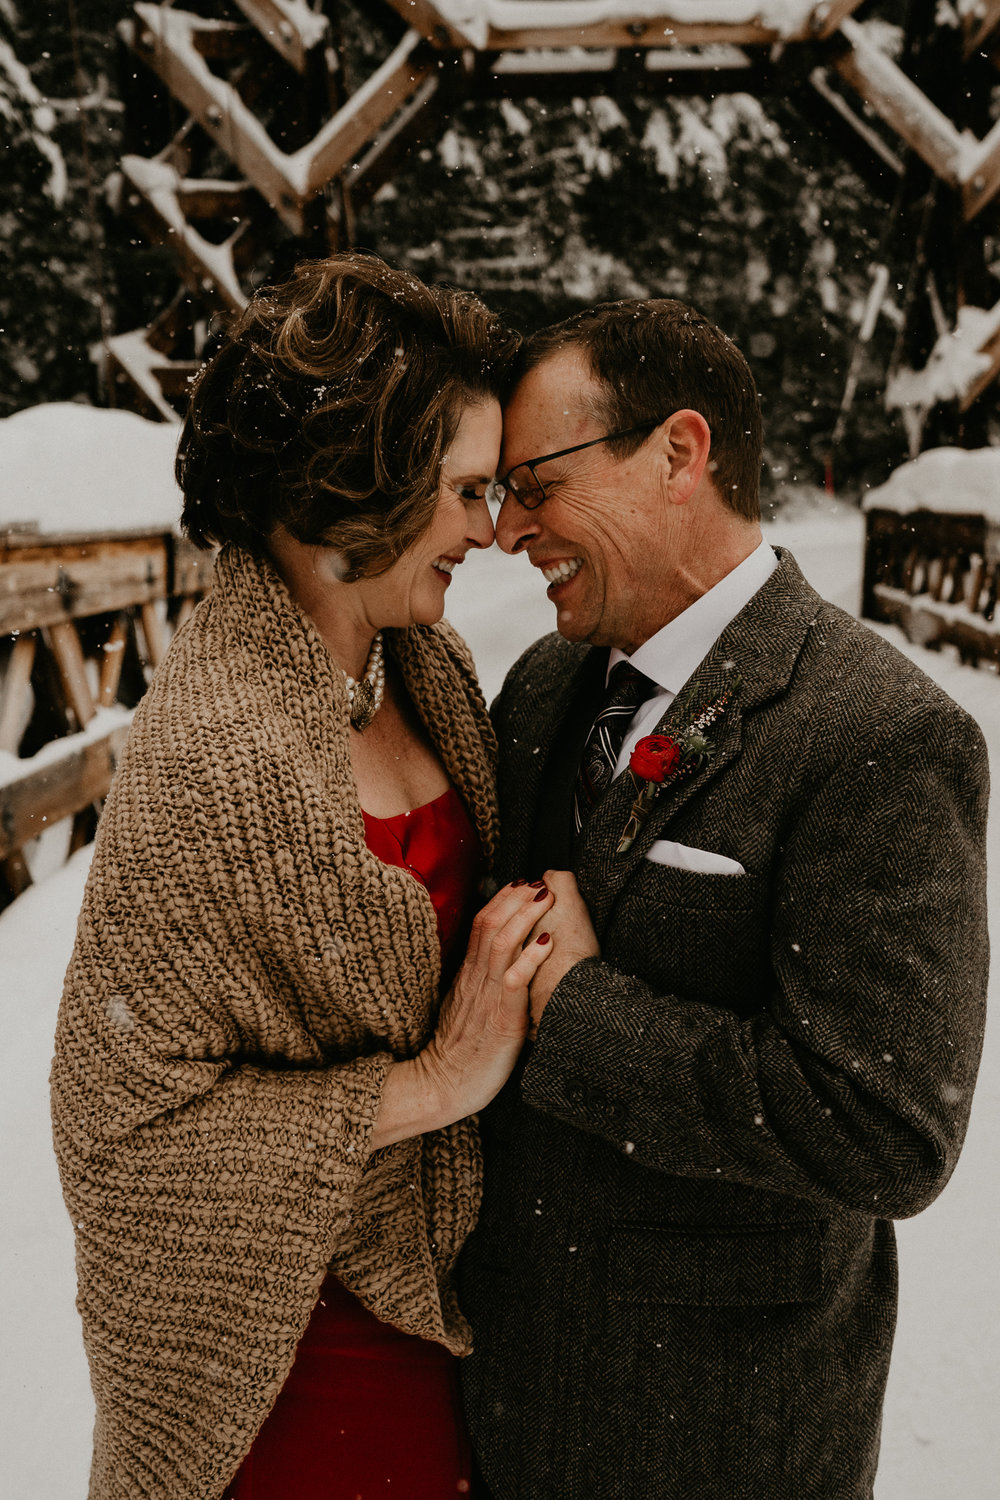 The greatest adventure weddings rusted vase floral co anne timms make up artist henry tieu photography winter elopement